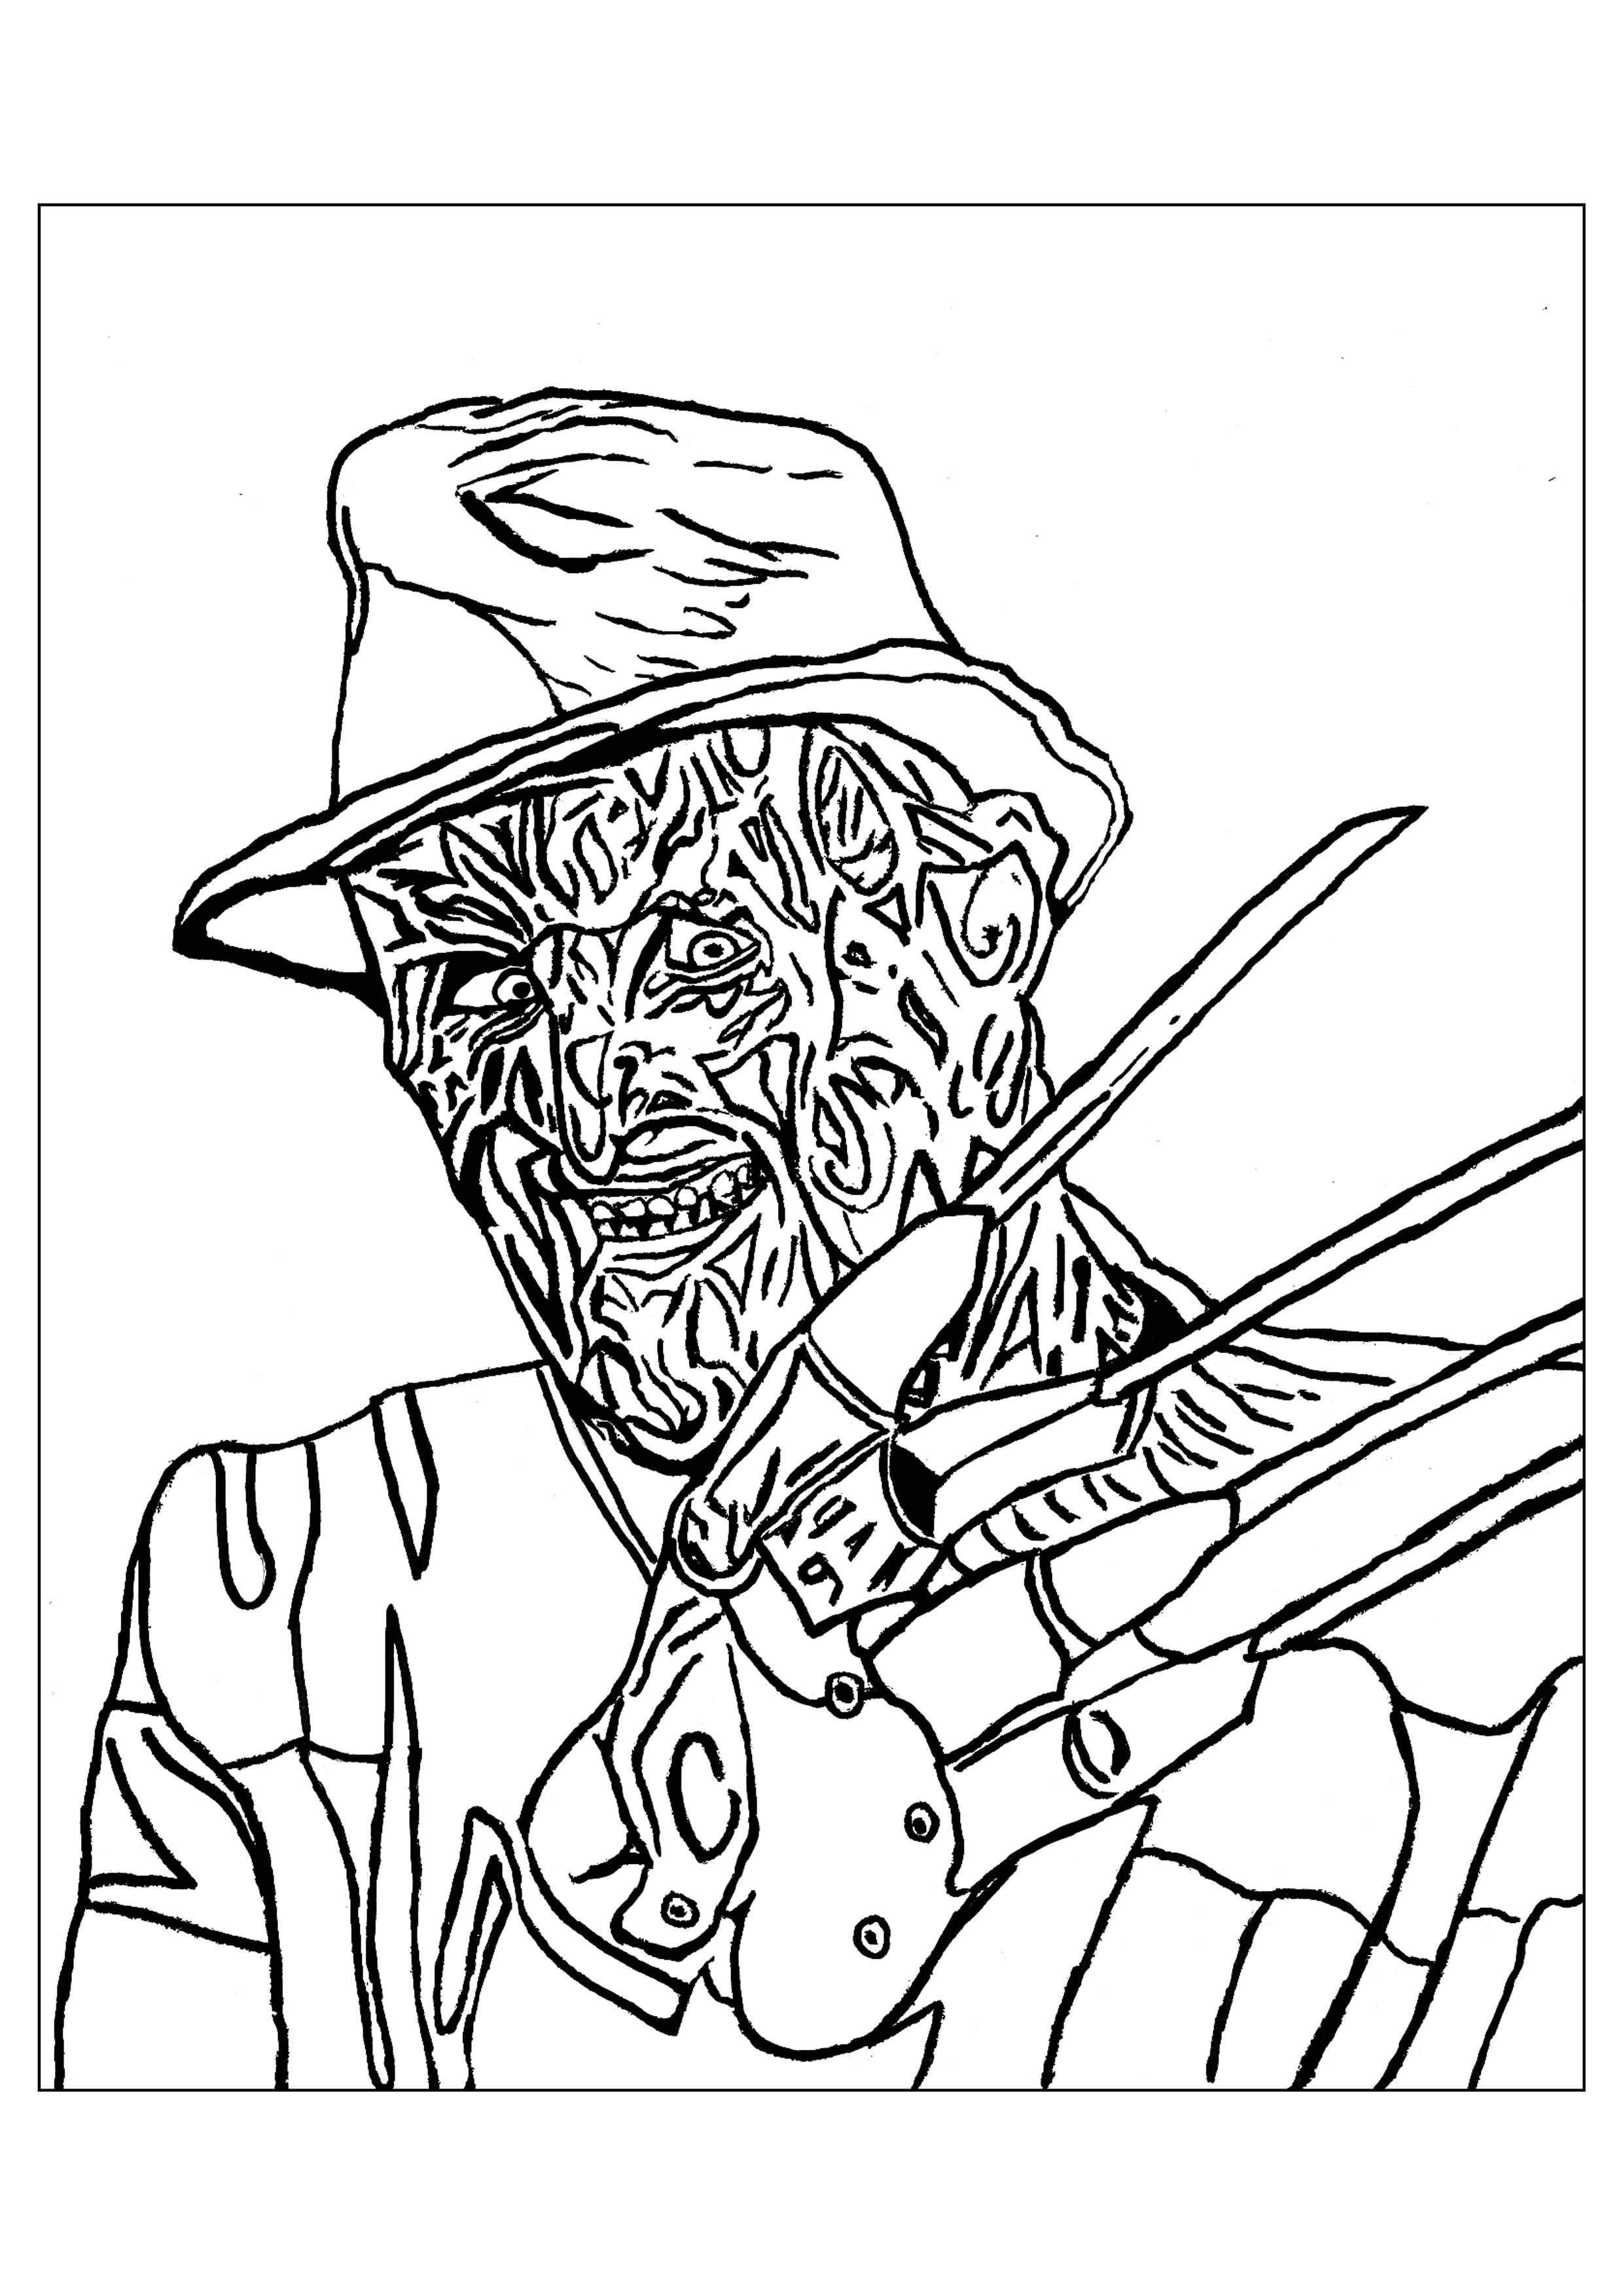 coloring pages halloween scary halloween haunted house halloween adult coloring pages halloween scary coloring pages